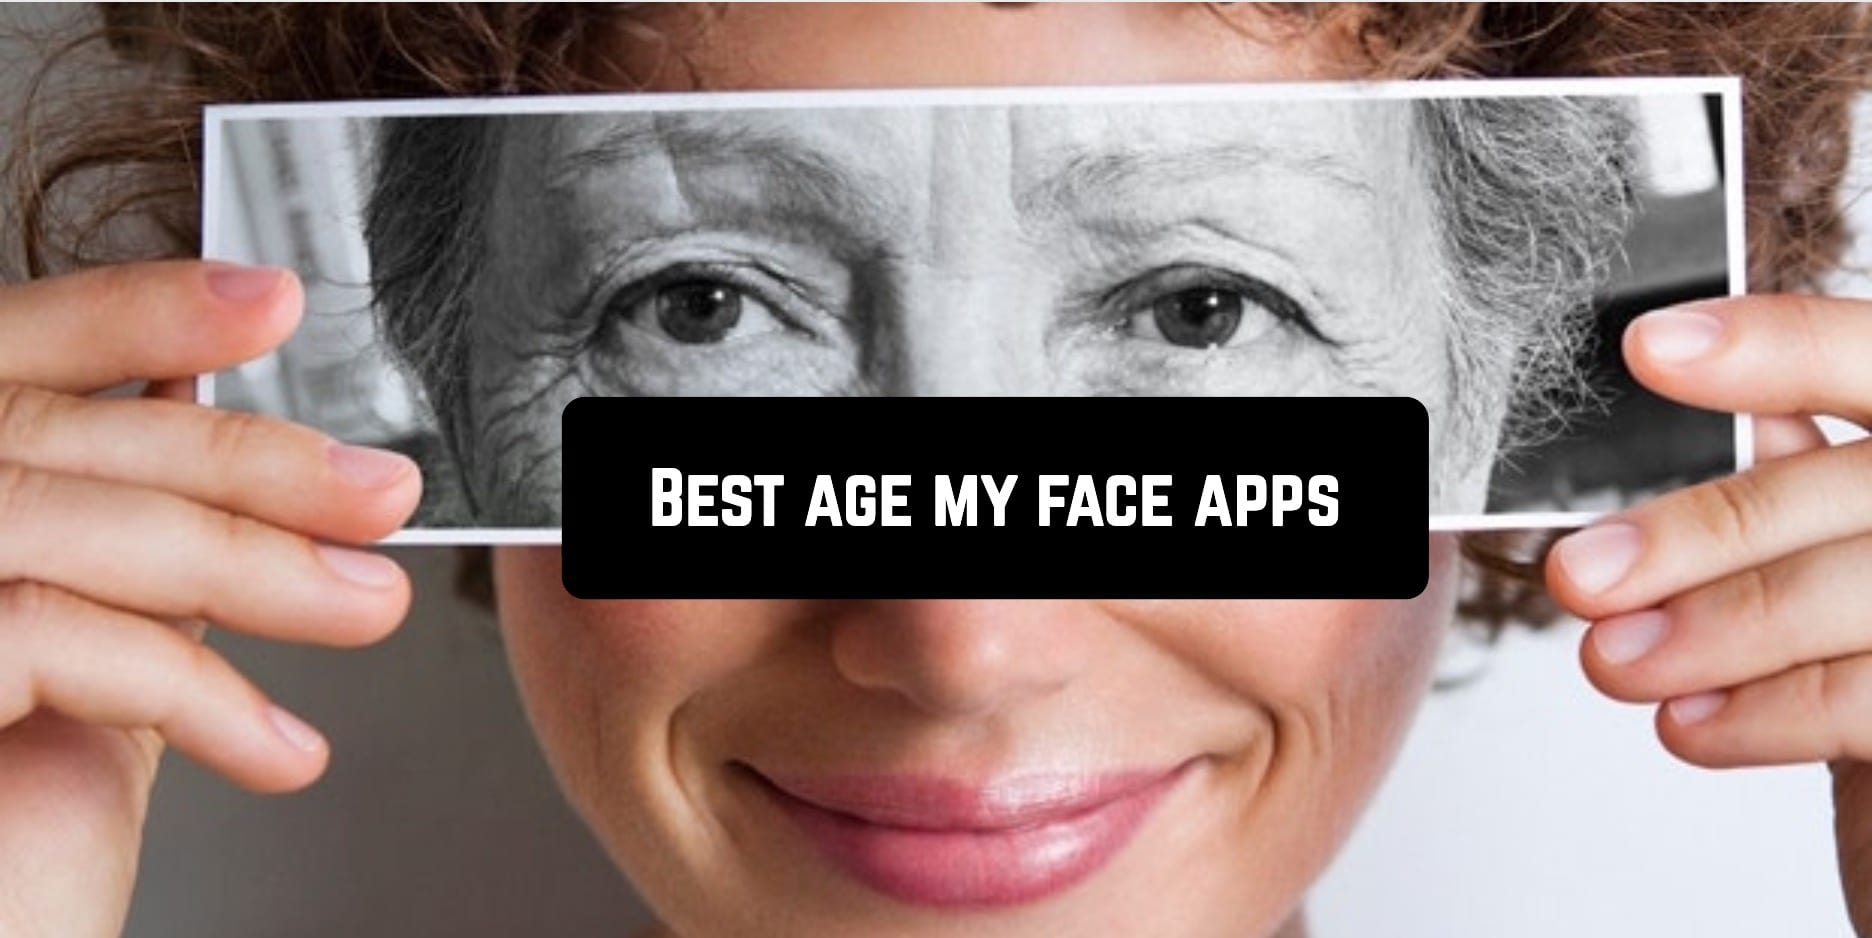 Best age my face apps